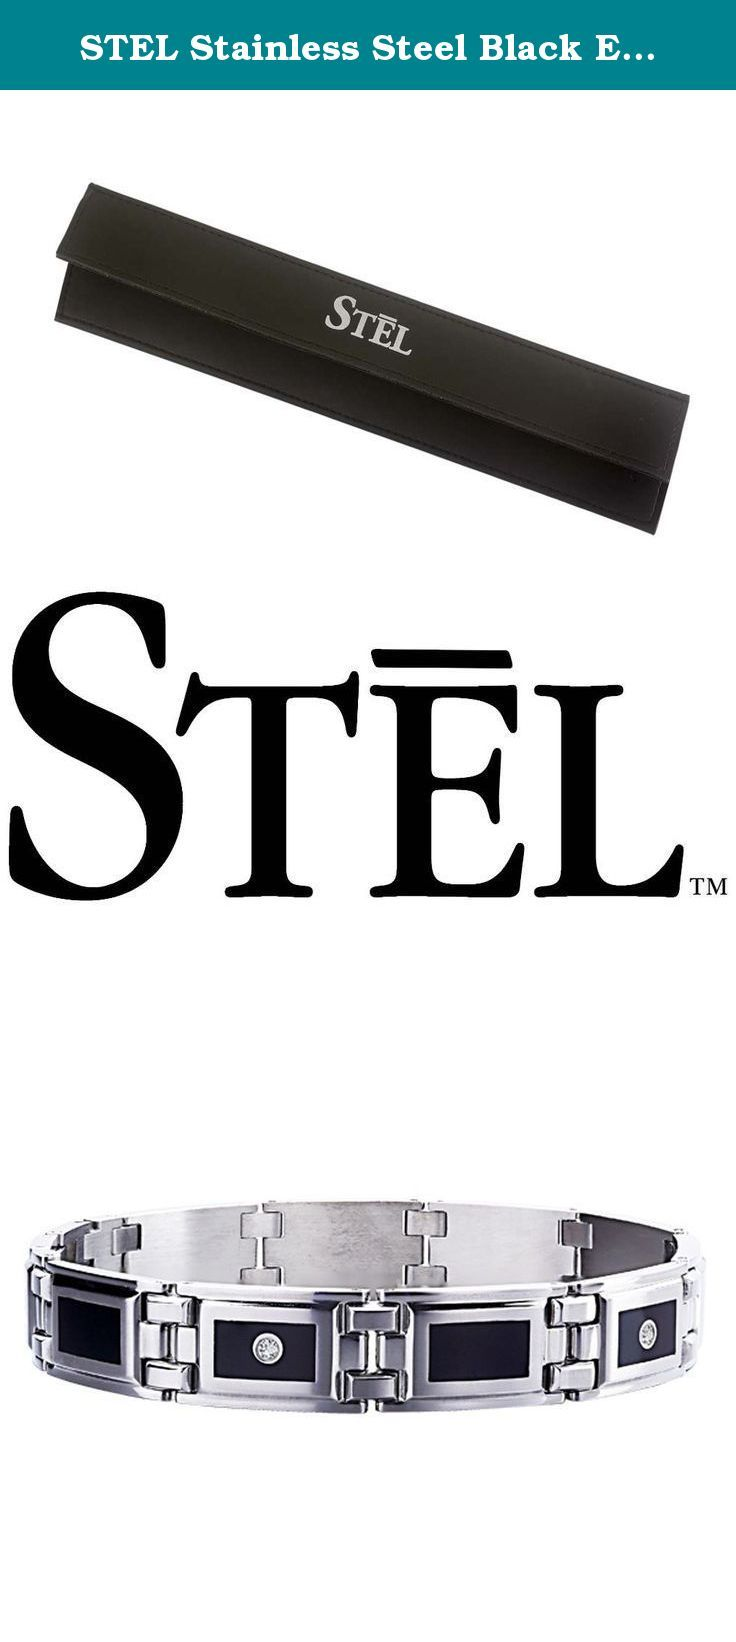 """STEL Stainless Steel Black Enamel Inlay and .12ct tw Diamond Bracelet 8 1/2"""". Jet black scratch resistant baked enamel is framed by sleek jewelry grade stainless steel and accented with genuine diamonds. Suave sophistication at its most handsome. STEL is the original line of stainless steel jewelry accessories for men of all ages and lifestyles. Precision crafted from the highest quality 316L Stainless Steel, plumb gold, diamonds and everlasting enamel, the STEL collections are stylish..."""